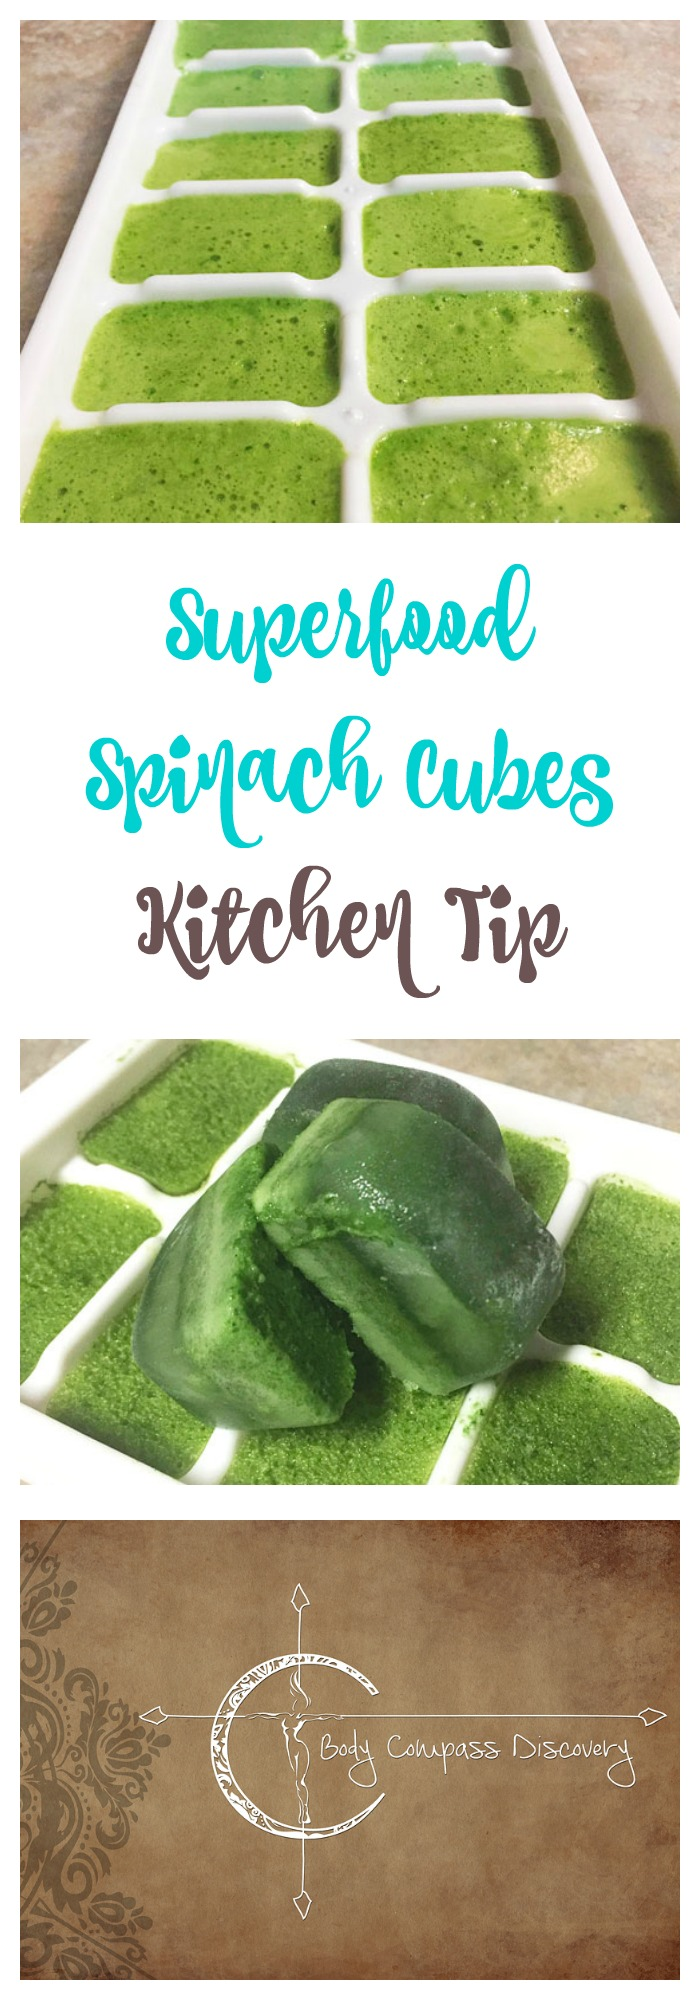 Superfood Spinach Cubes kitchen tip